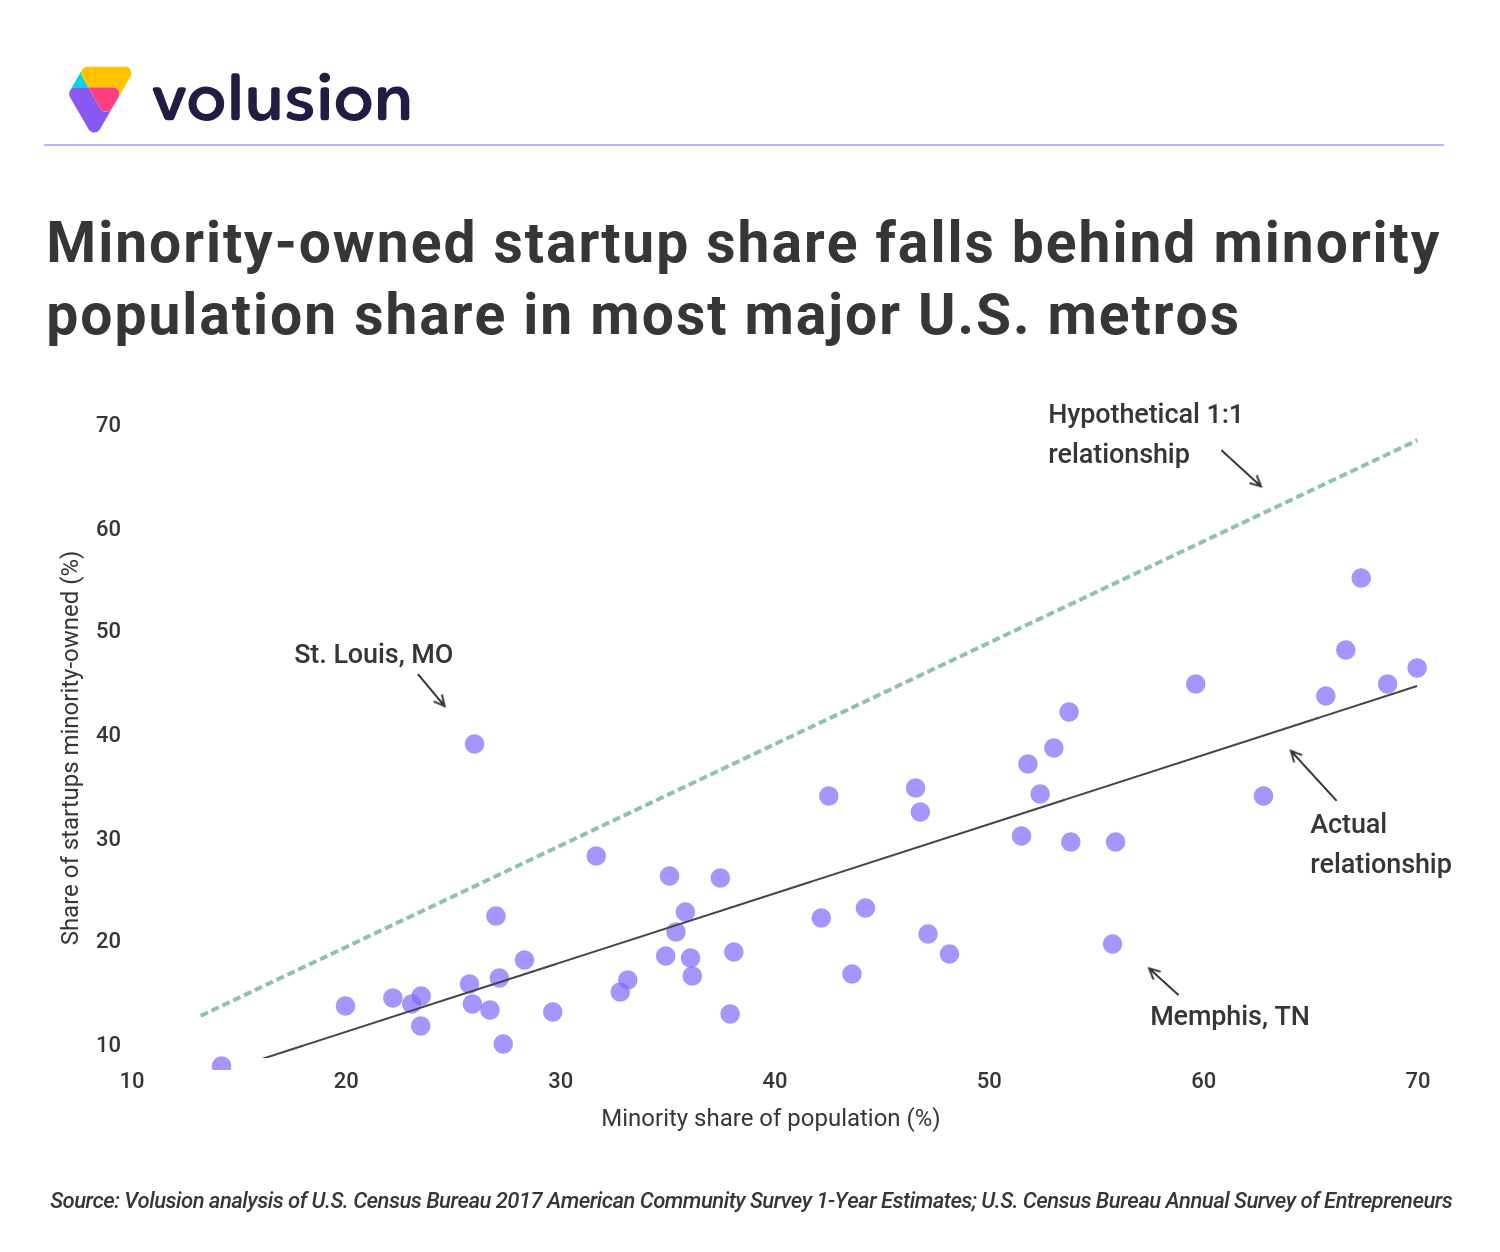 Scatterplot showing distributioni of minority-owned startups against the minority population share